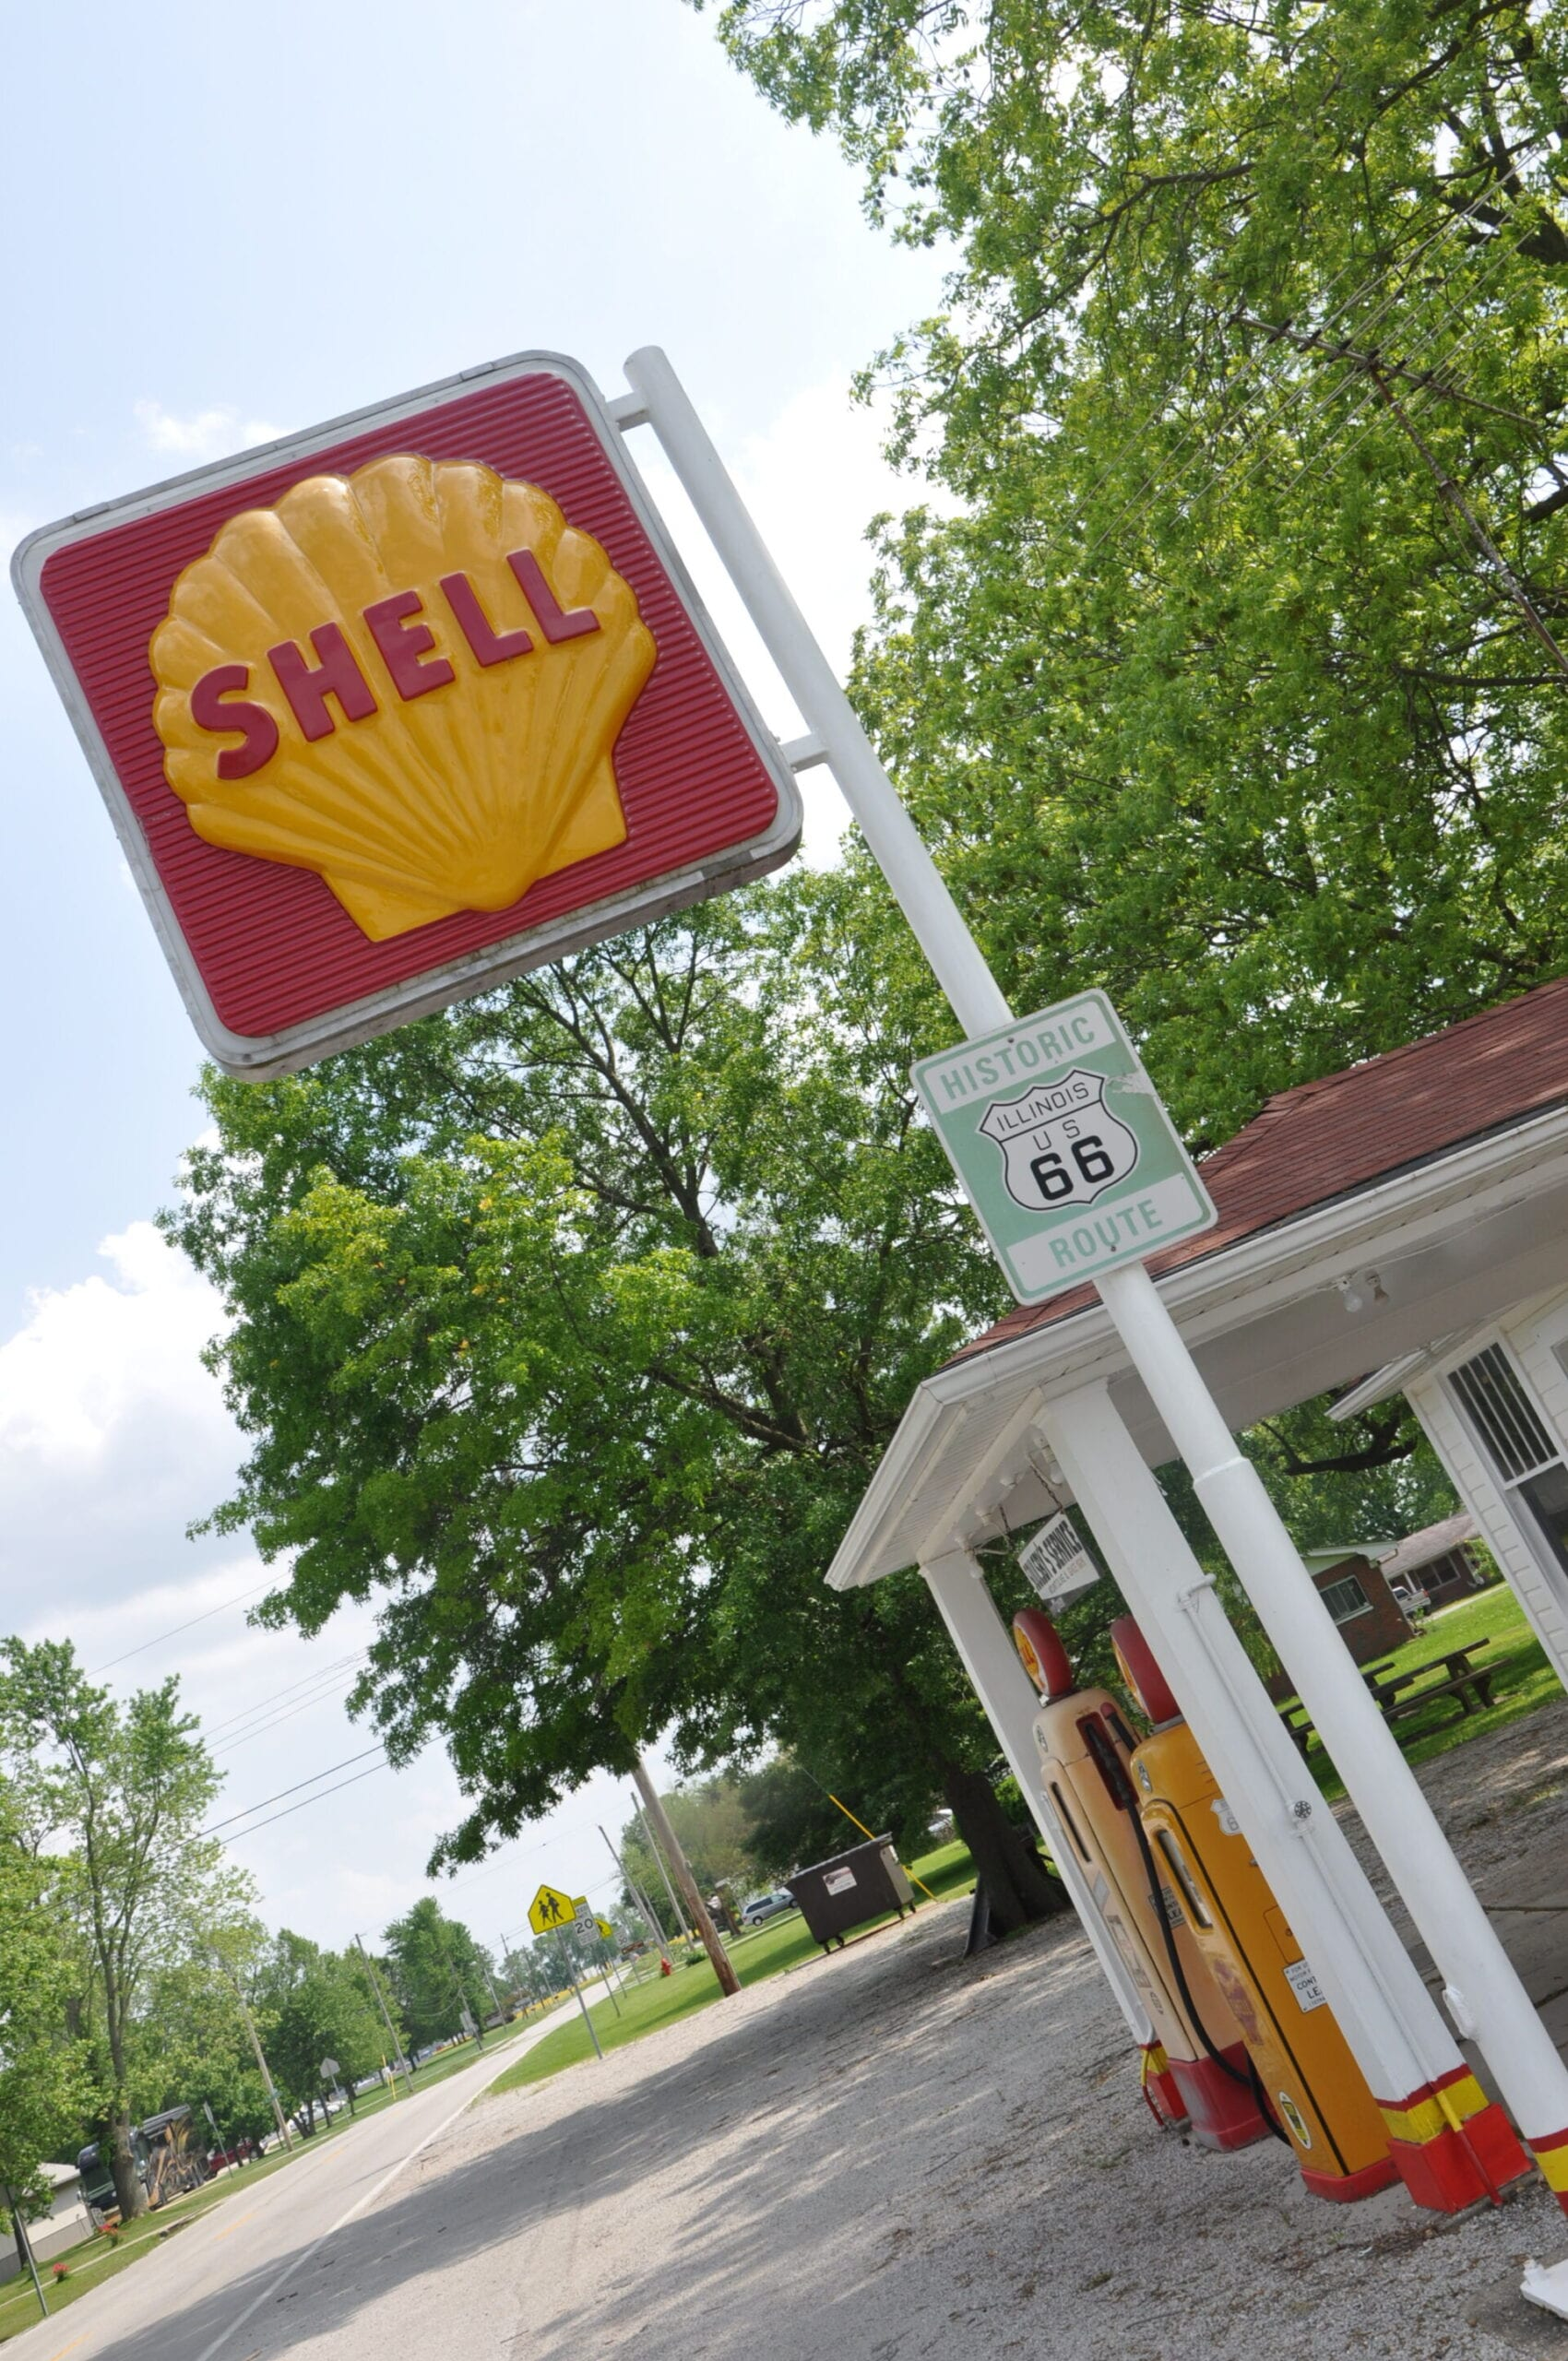 Soulsby's Route 66 Shell Service Station